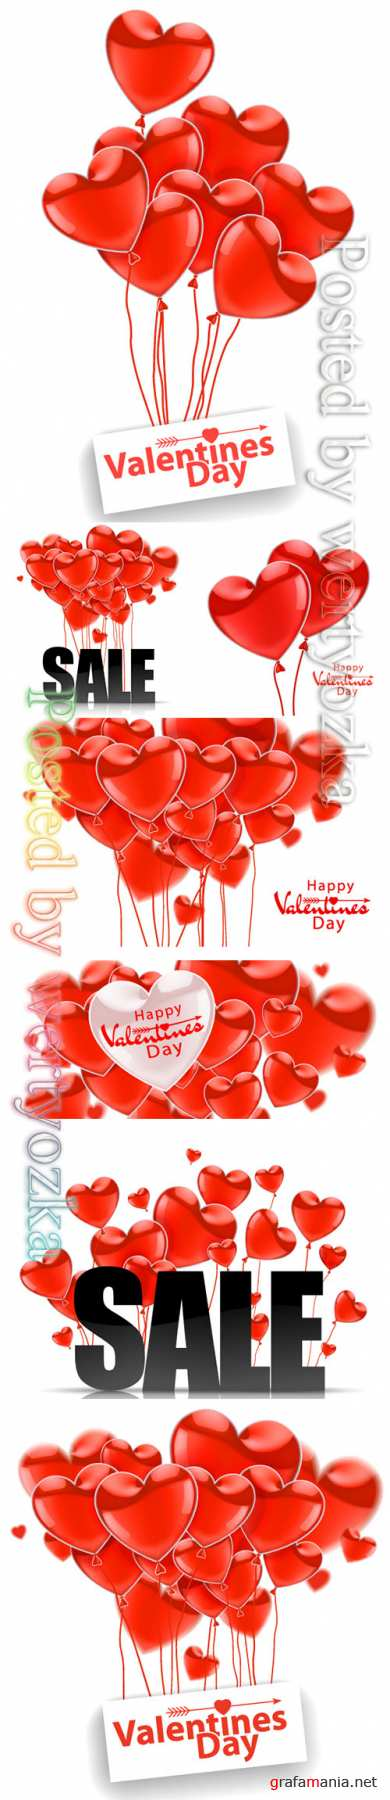 Happy Valentines Day, red flying realistic glossy balloons on a white background